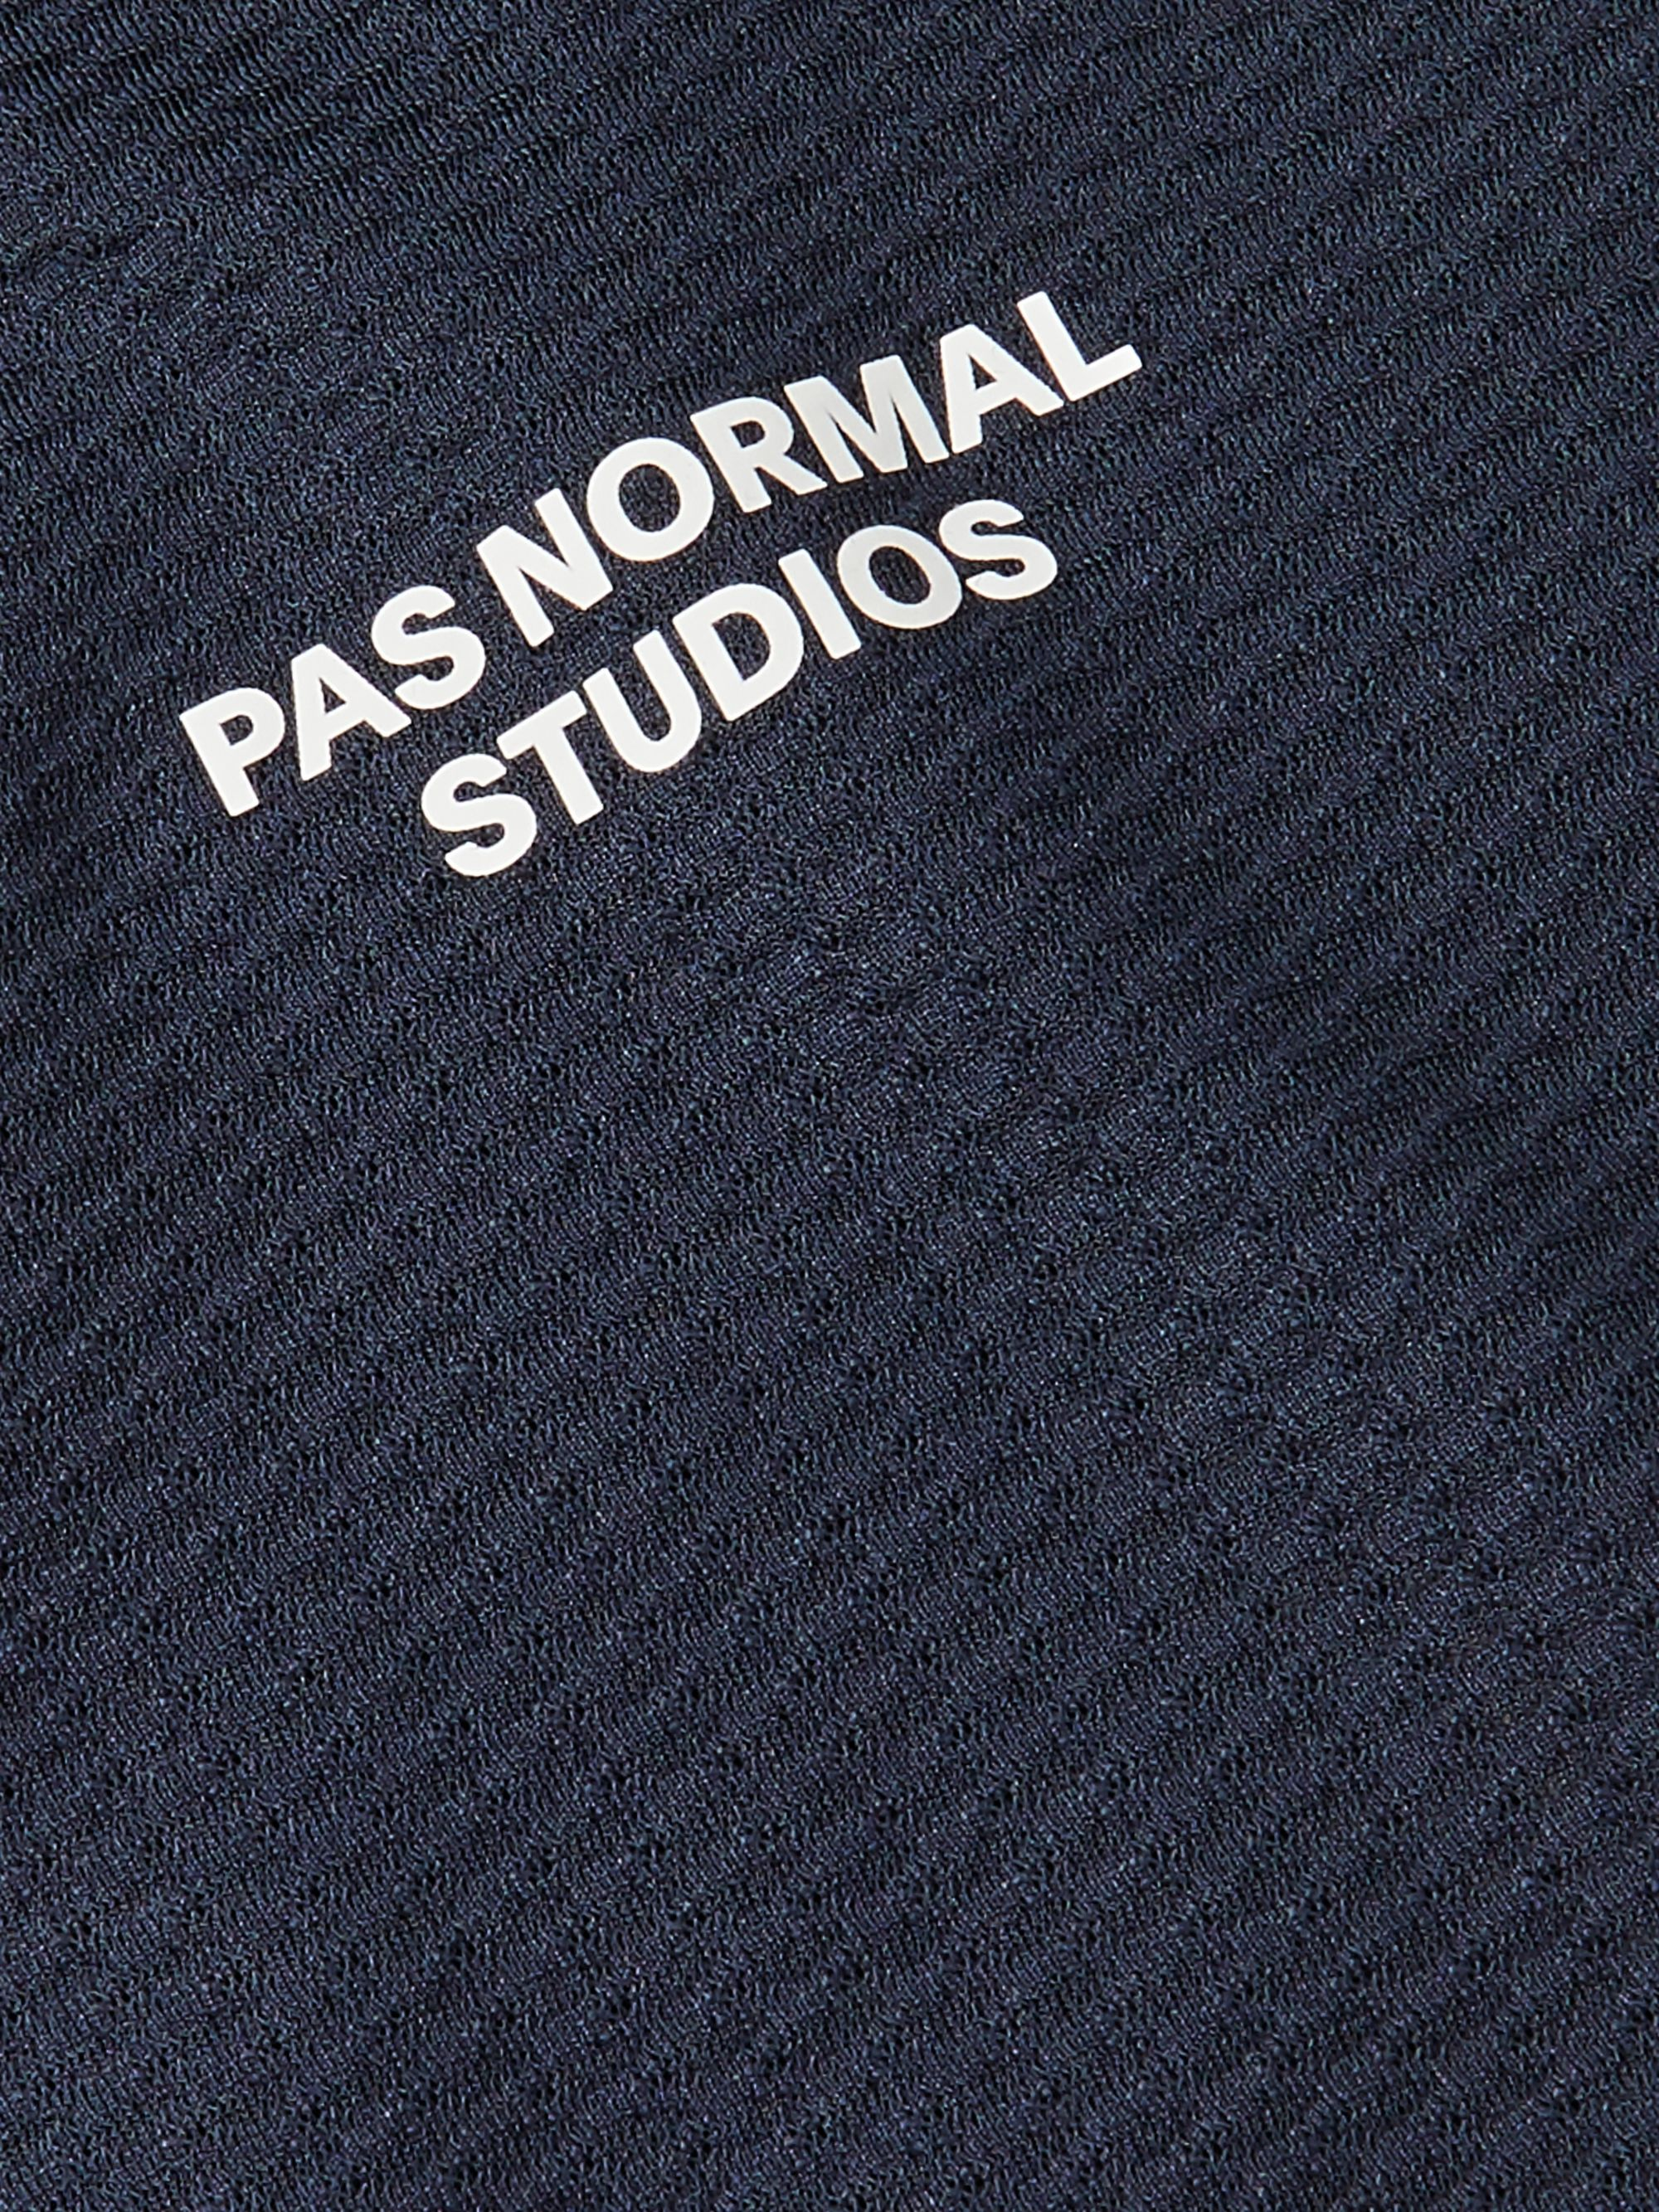 Pas Normal Studios Stretch-Mesh Cycling Base Layer